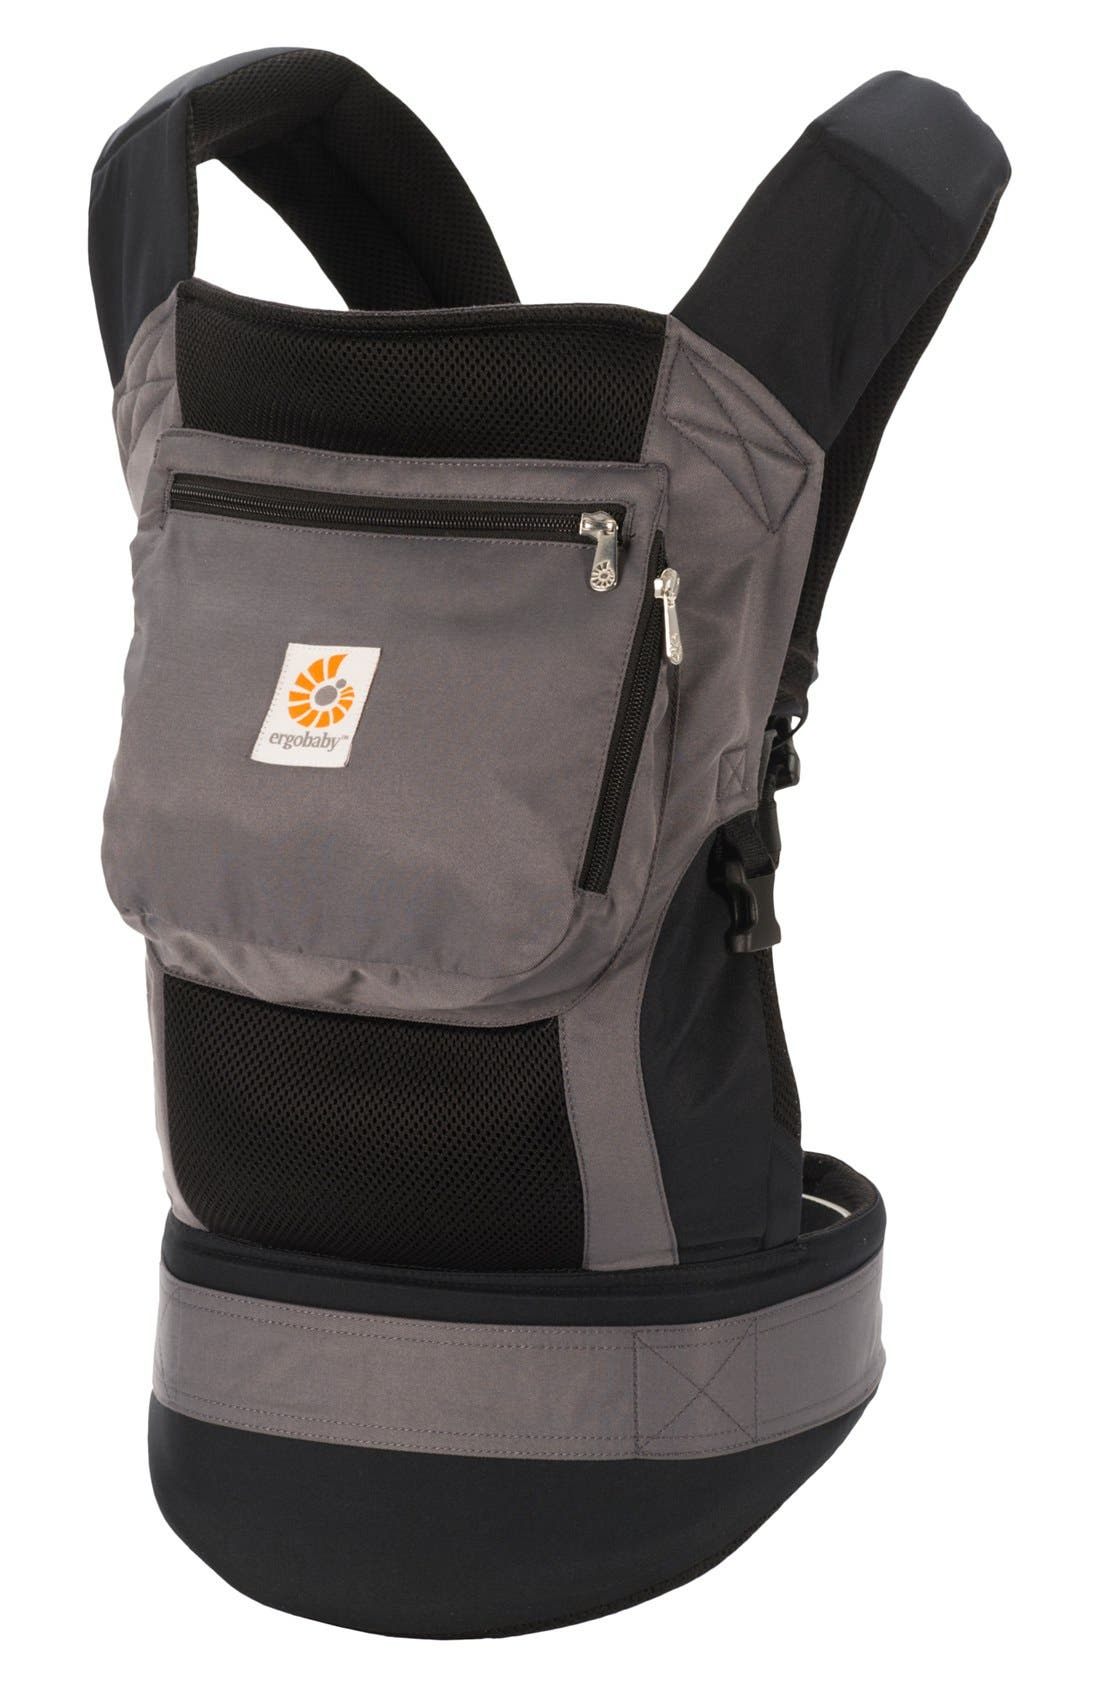 Main Image - ERGObaby 'Performance' Baby Carrier